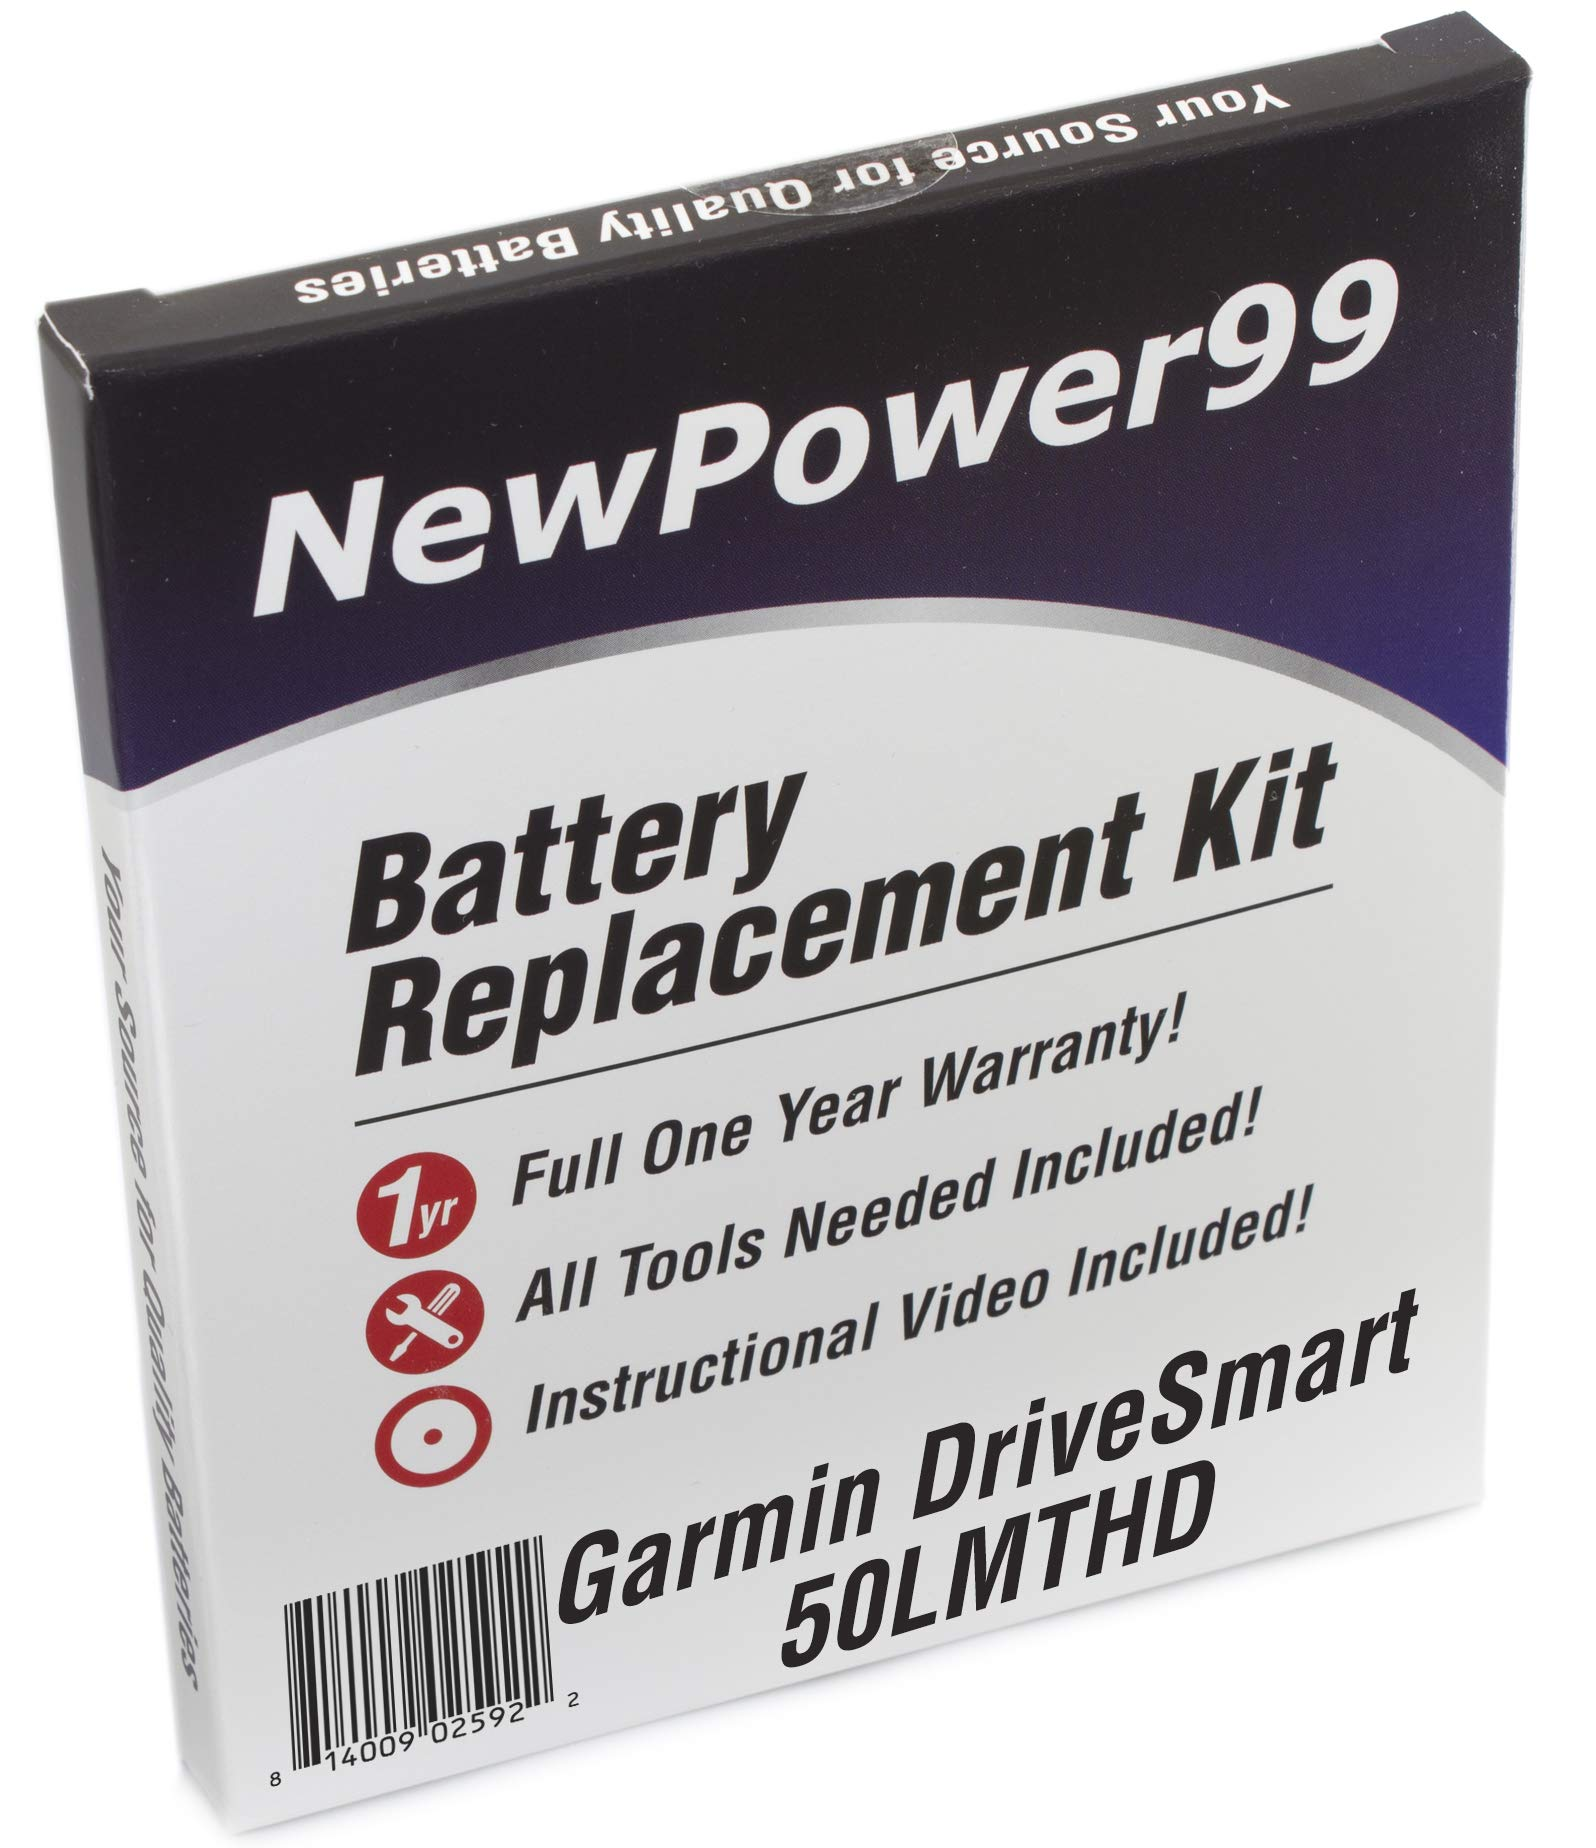 NewPower99 Battery Replacement Kit for Garmin DriveSmart 50LMTHD with Installation Video, Tools, and Extended Life Battery. by NewPower99